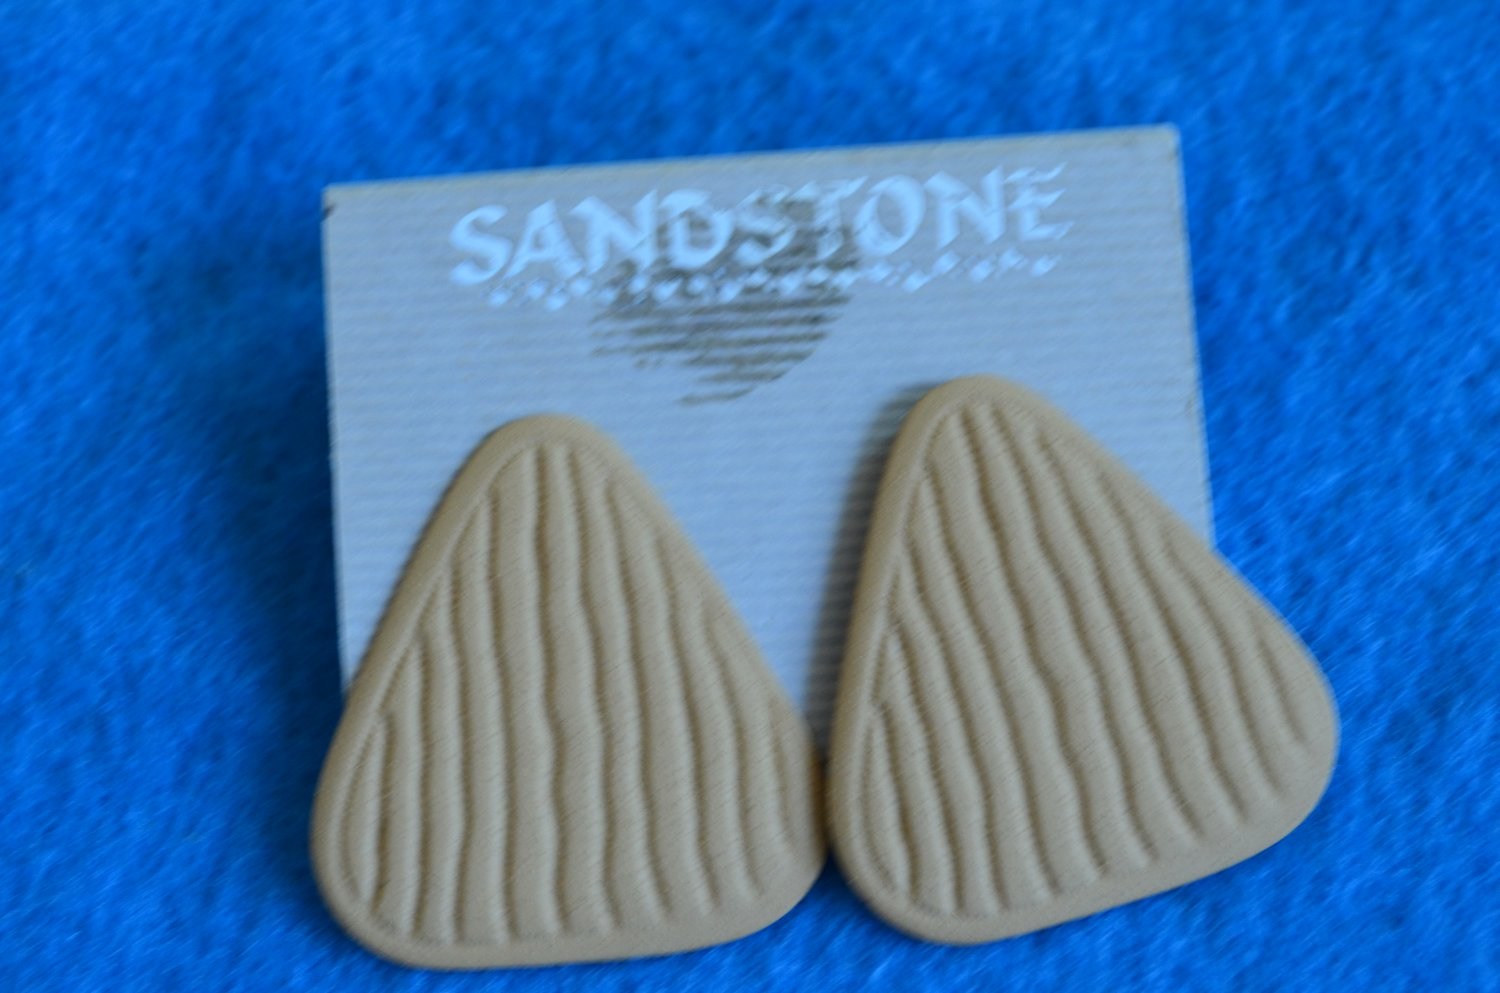 Vintage Earrings SANDSTONE Triangle Pierced On Card Triangular